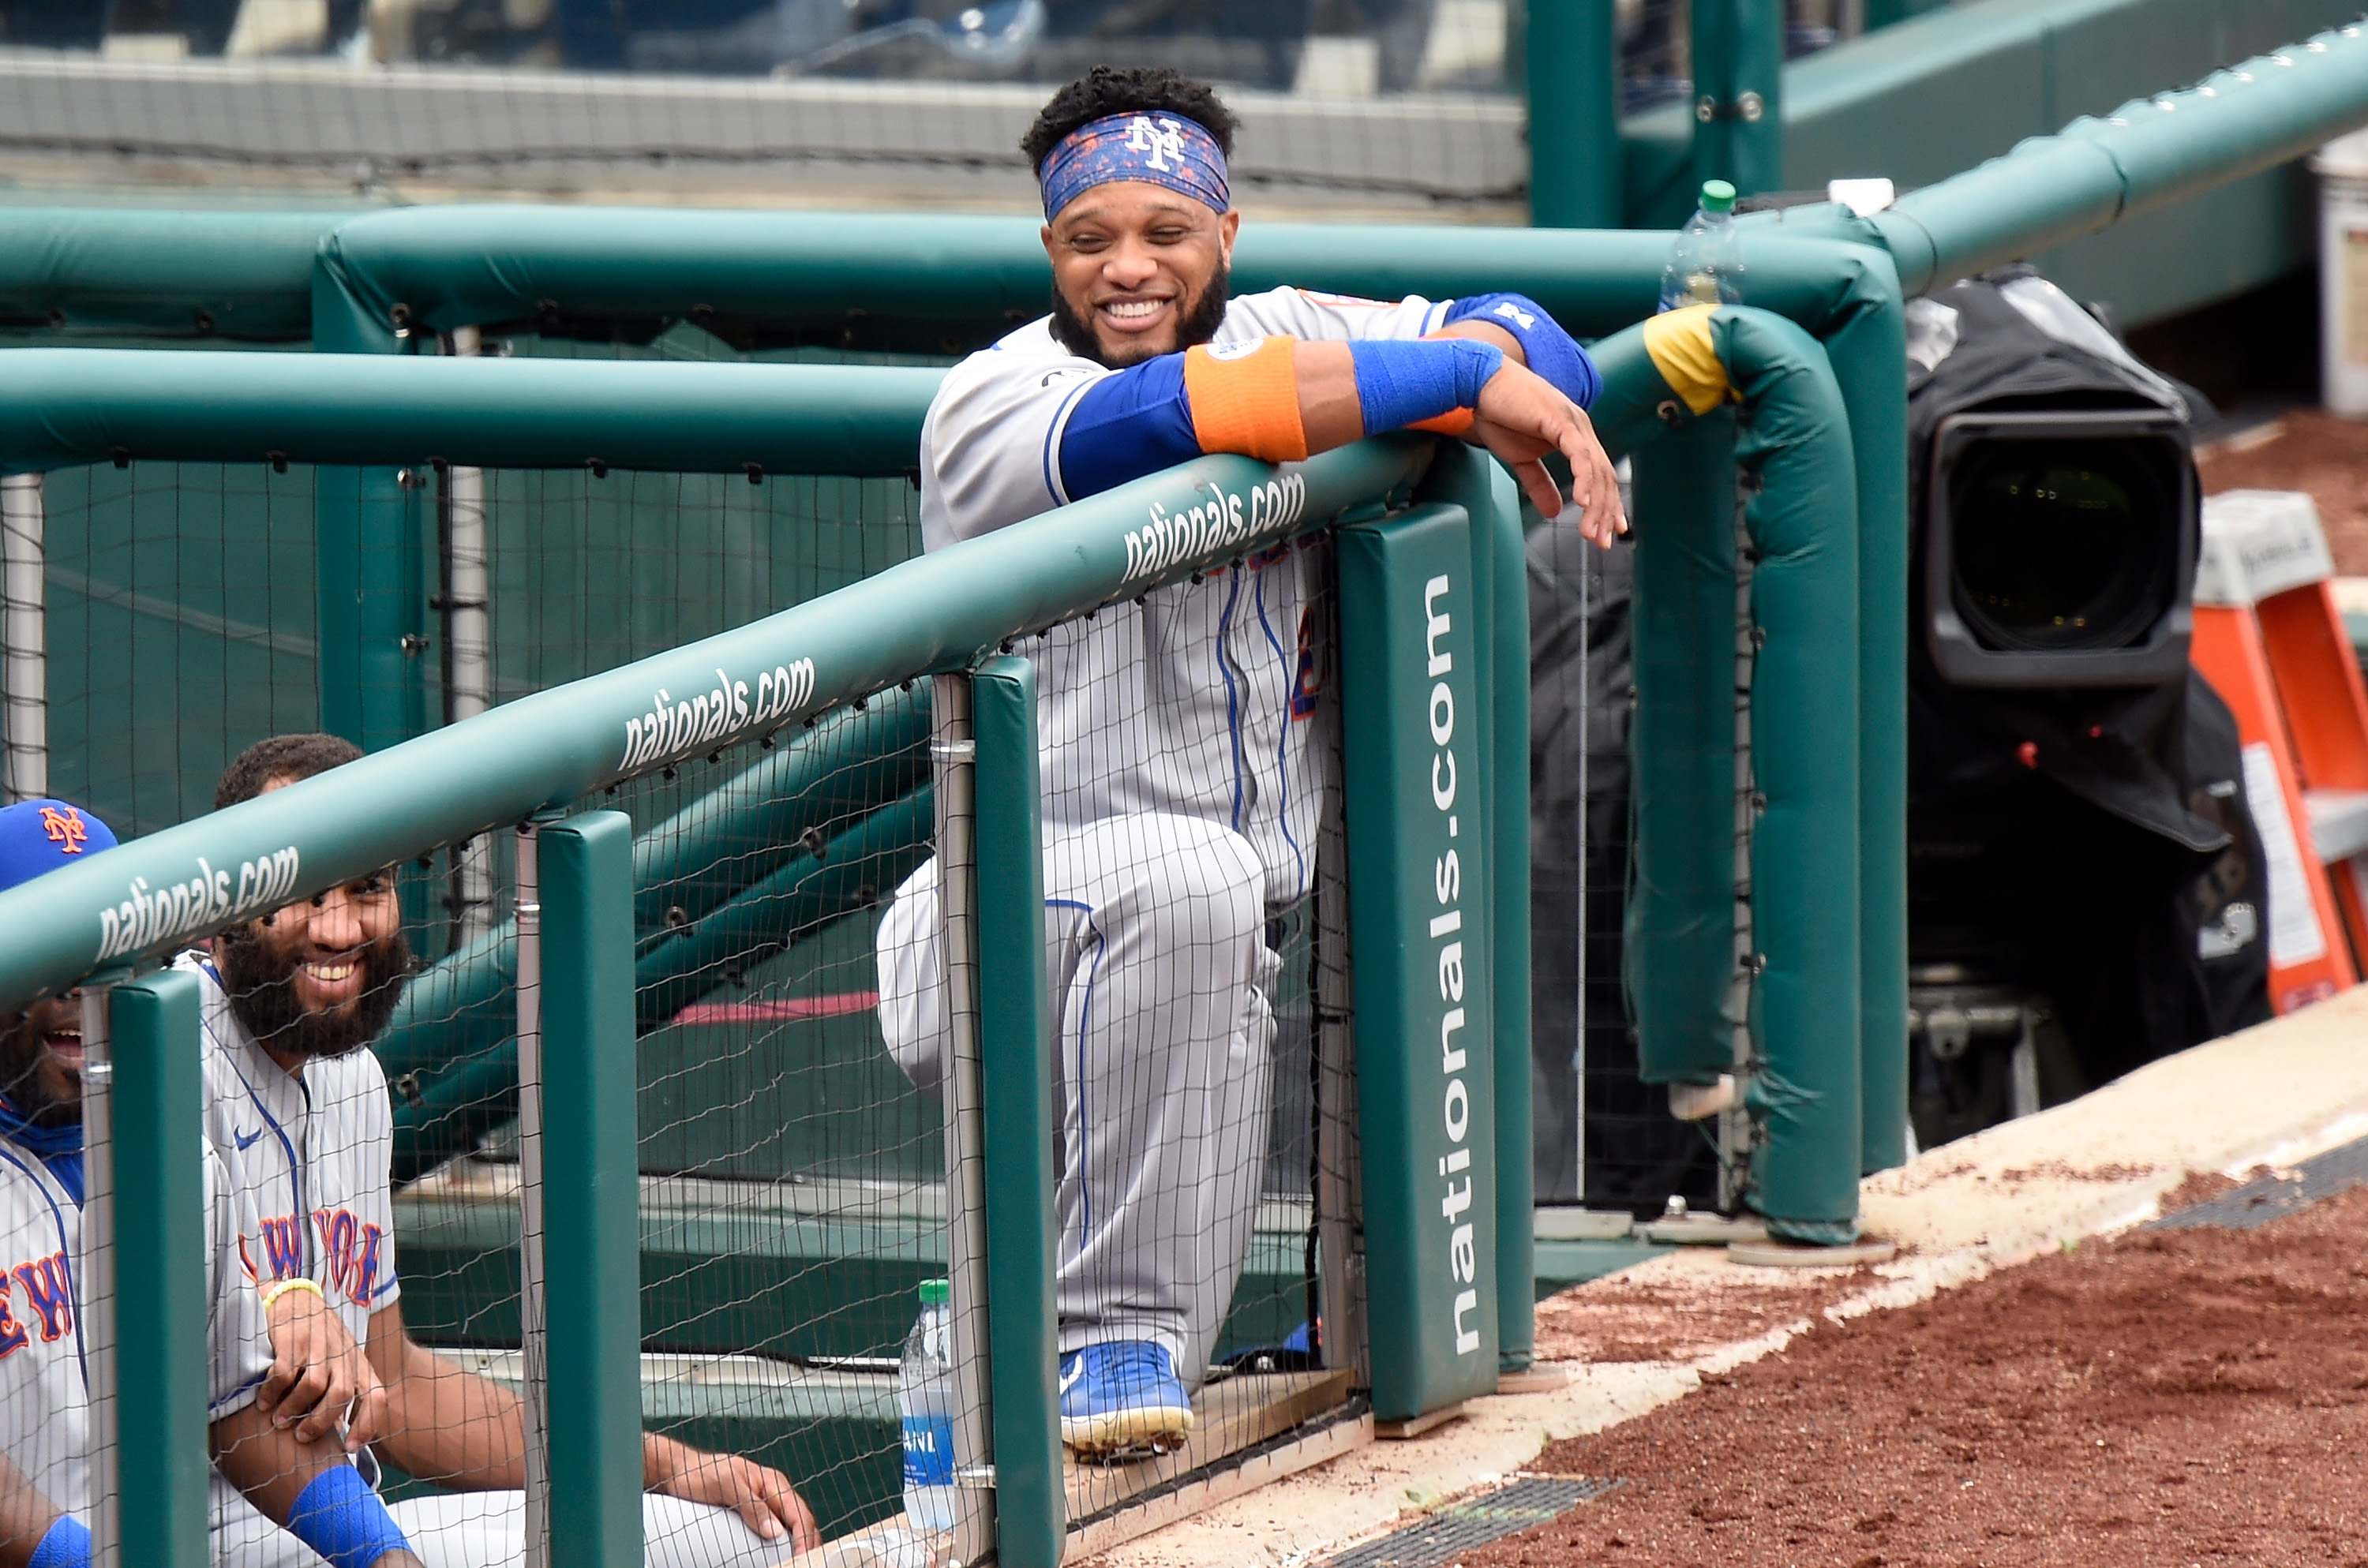 Robinson Cano of the New York Mets watches a 2020 game